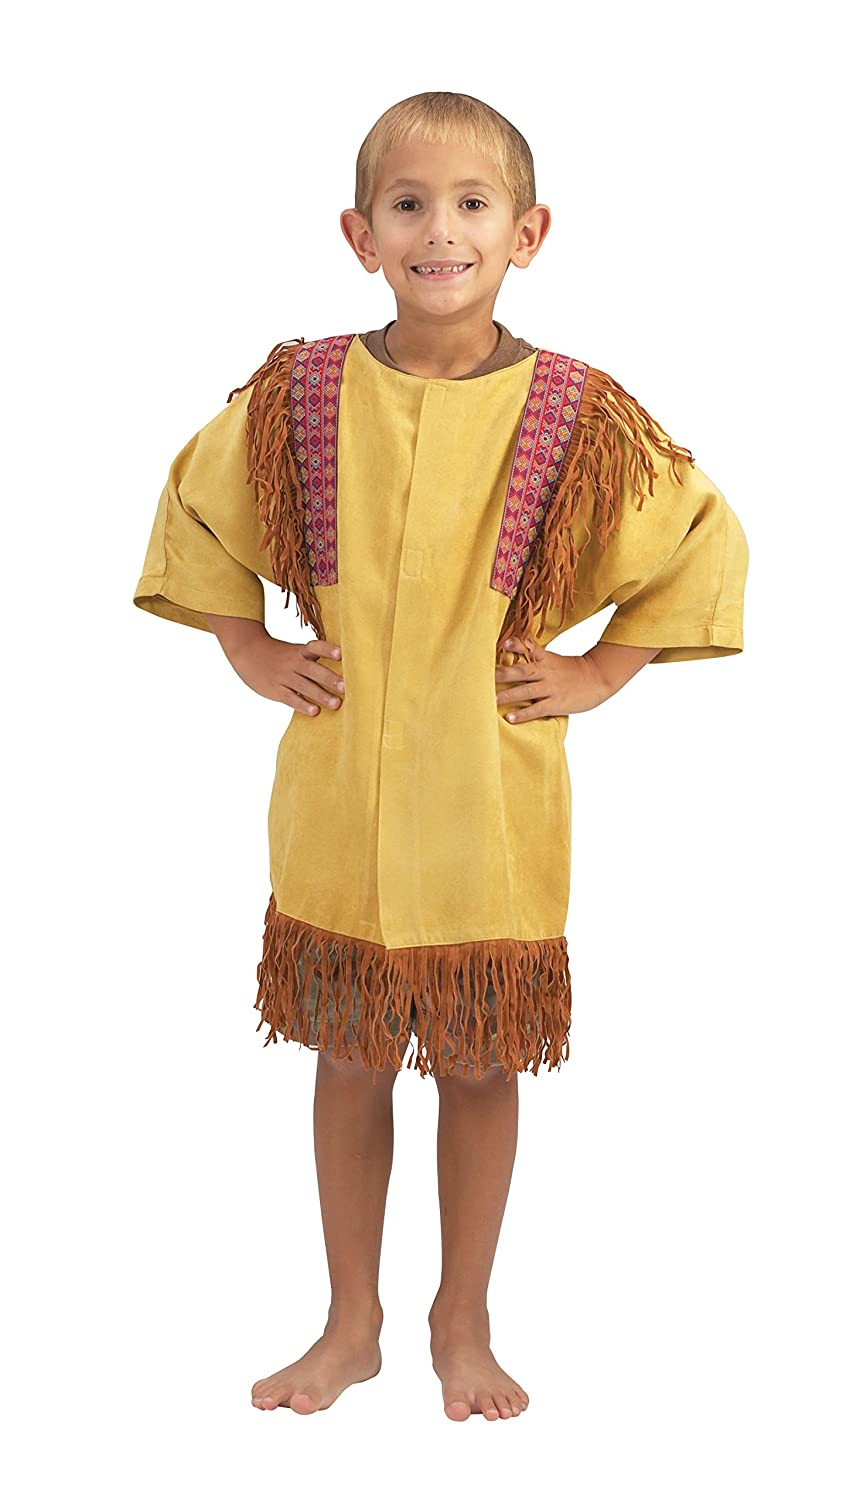 Brand New World CIB702 Multi-Cultural Dress Ups, Plains Region Indian Shirt